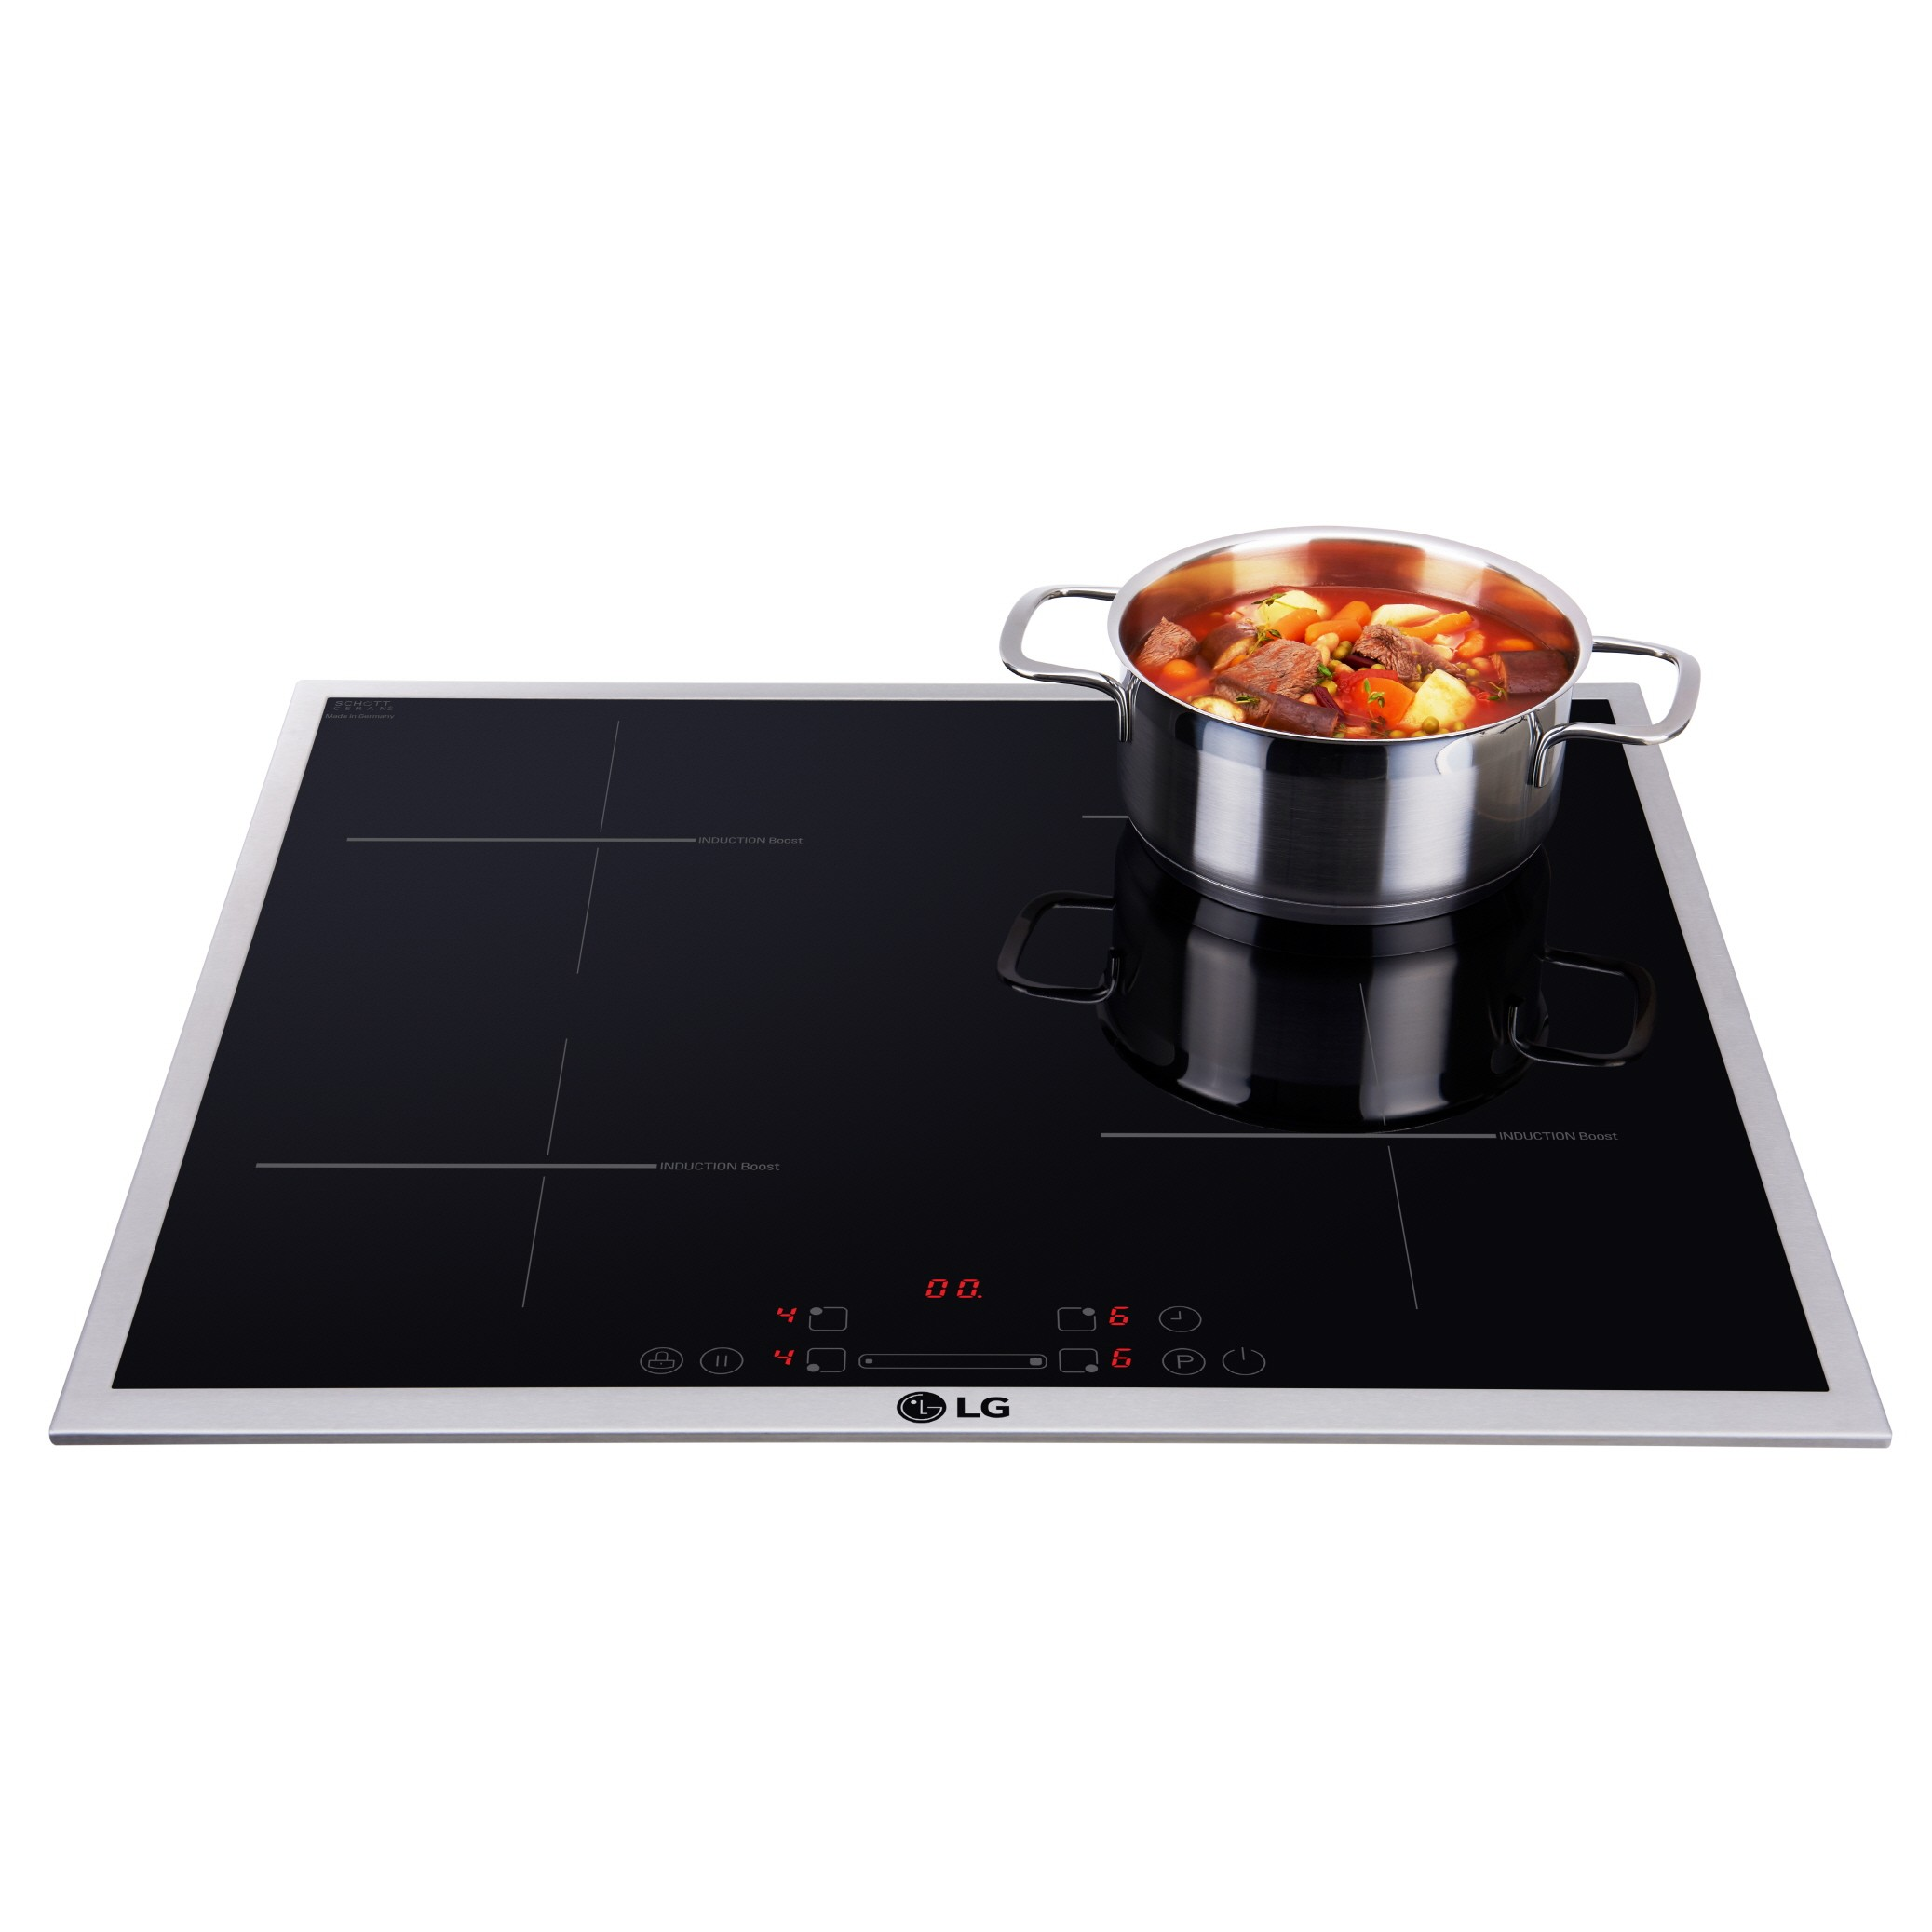 LG Studio Induction with a cooking pot on the right upper section